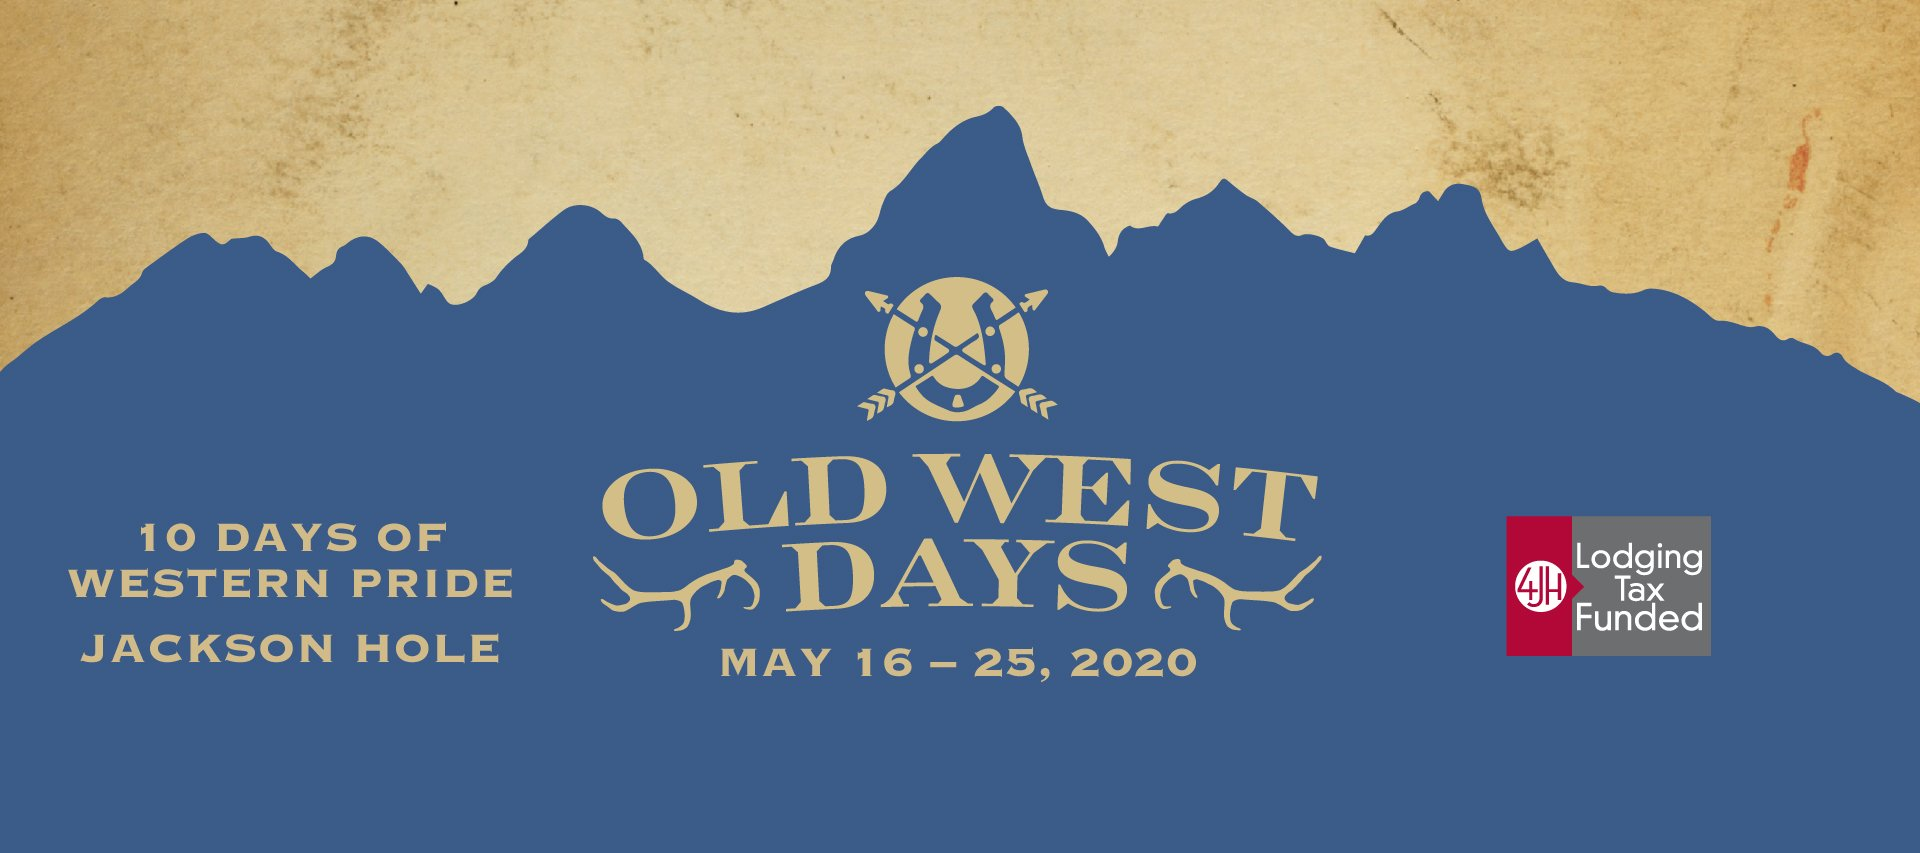 A 10-day festival celebrating Jackson's Old West culture May 16-25, 2020.